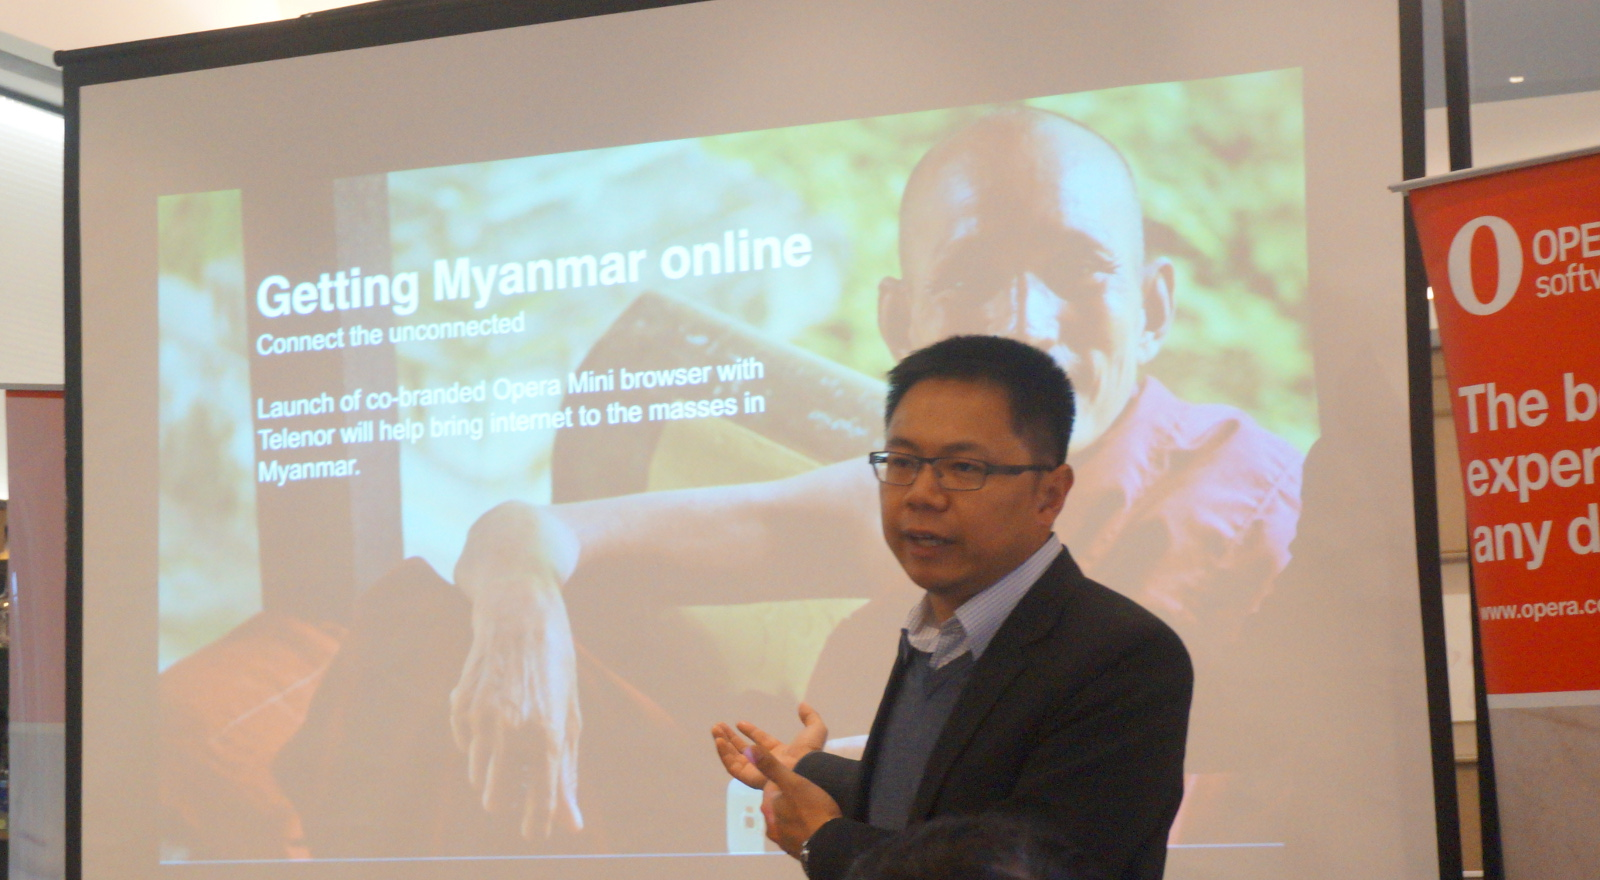 getting-myanmar-online-by-opera